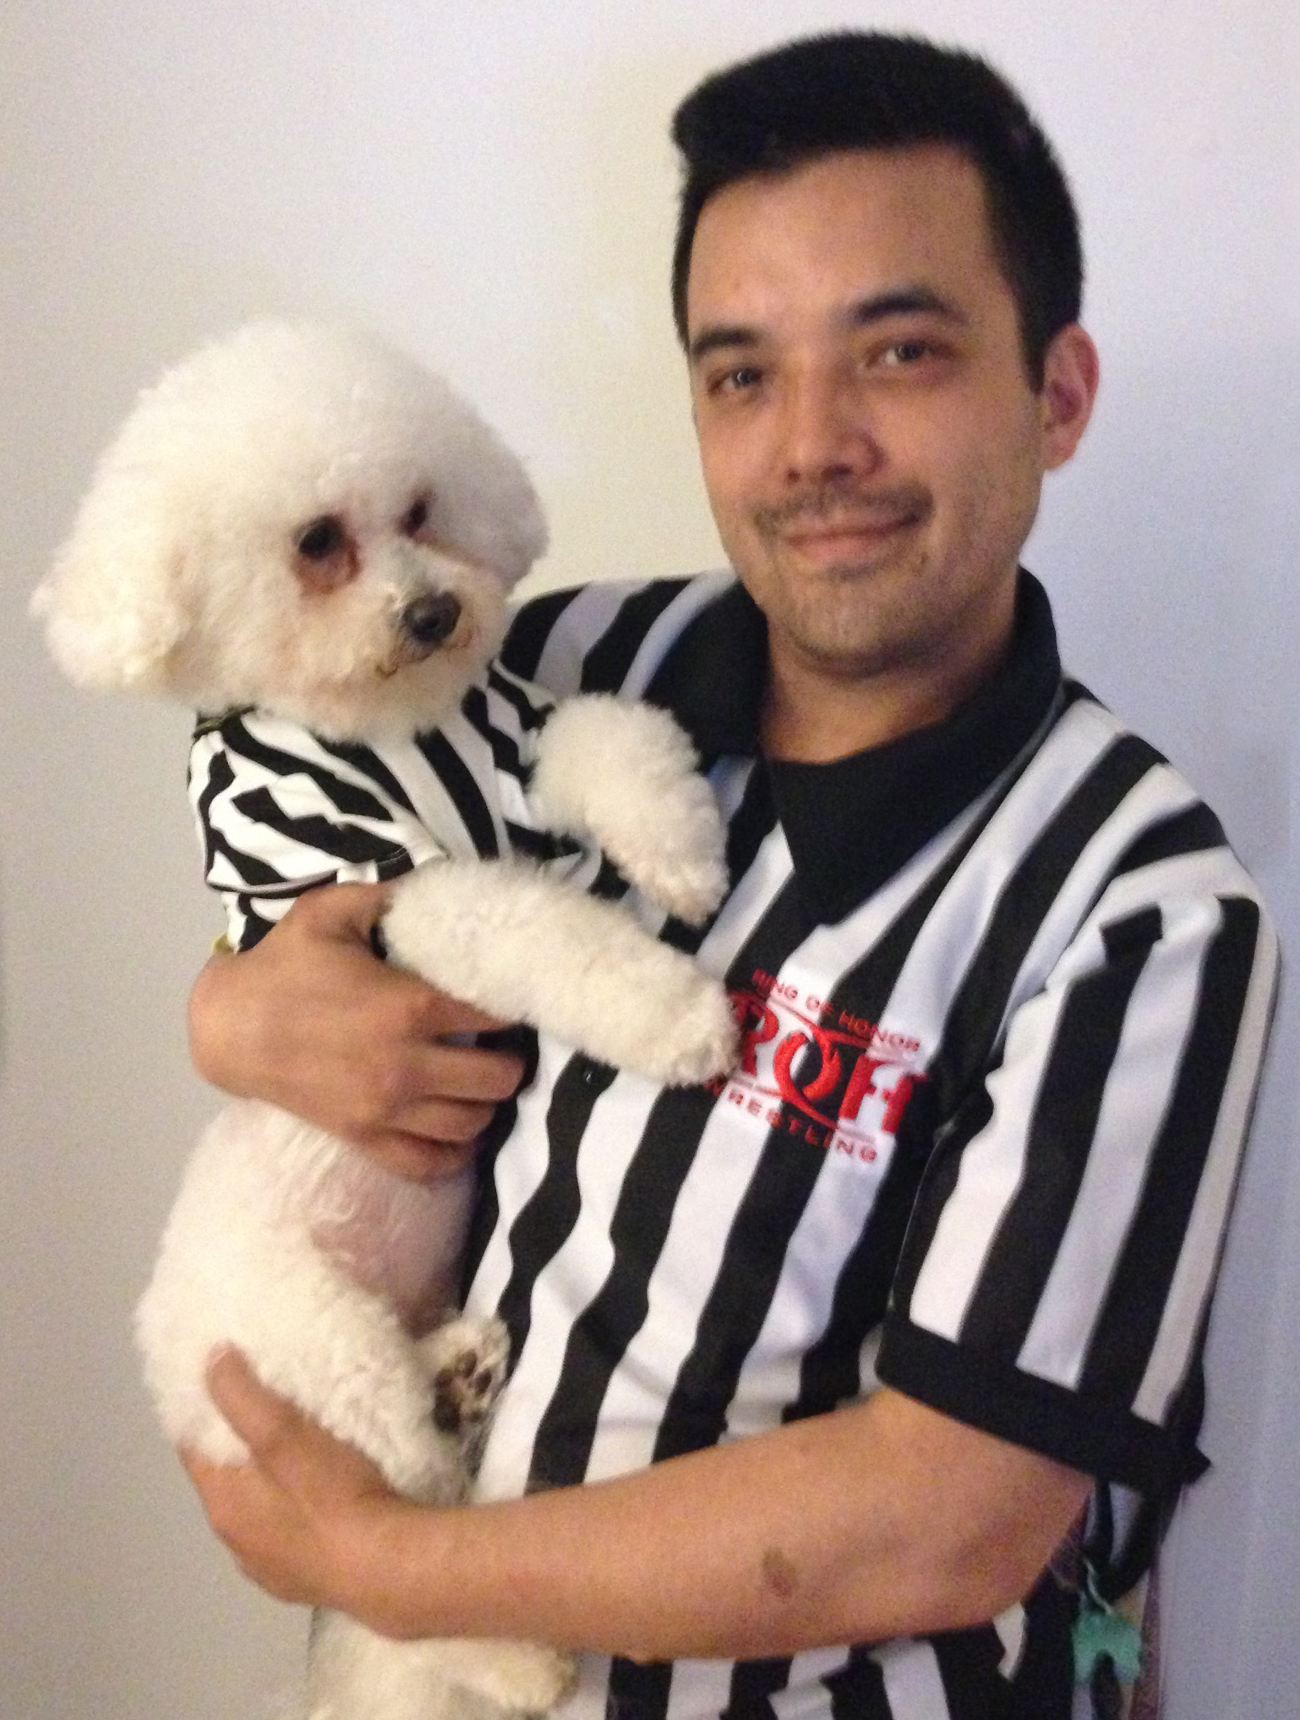 Dan Professional Wrestling Referee Tanaka and Rufferee Diamond Baby